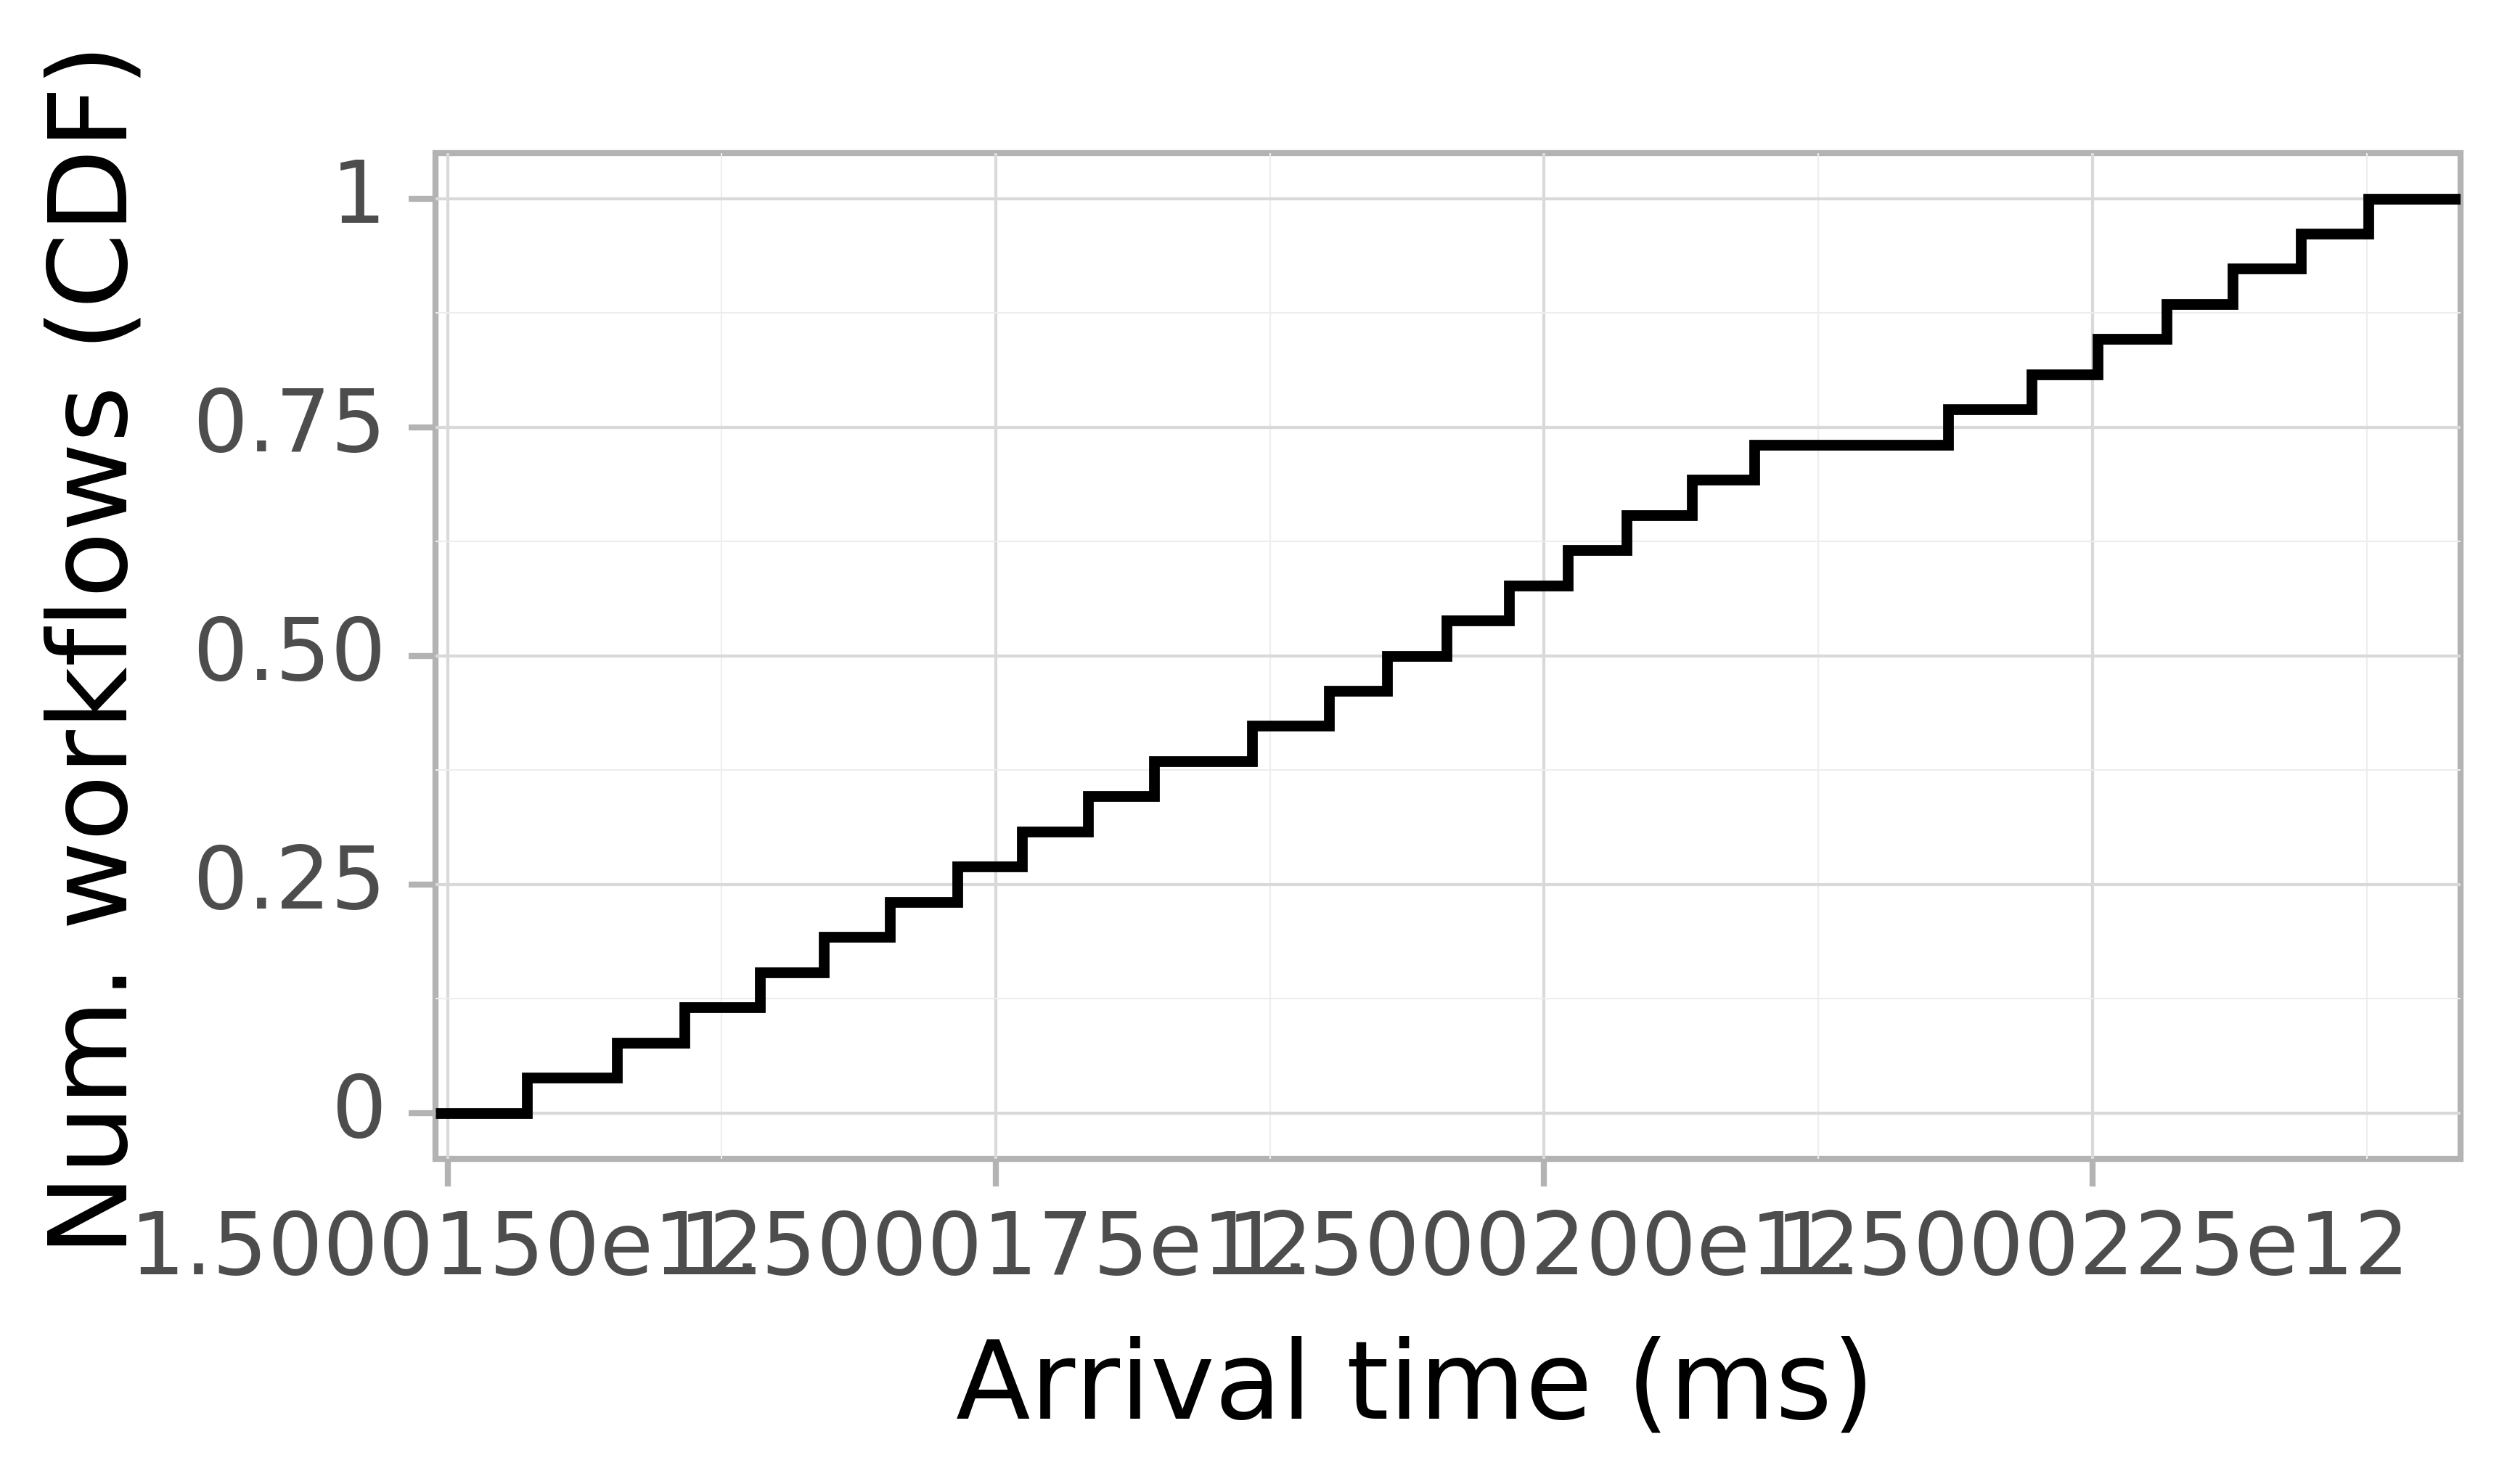 Job arrival CDF graph for the askalon-new_ee29 trace.